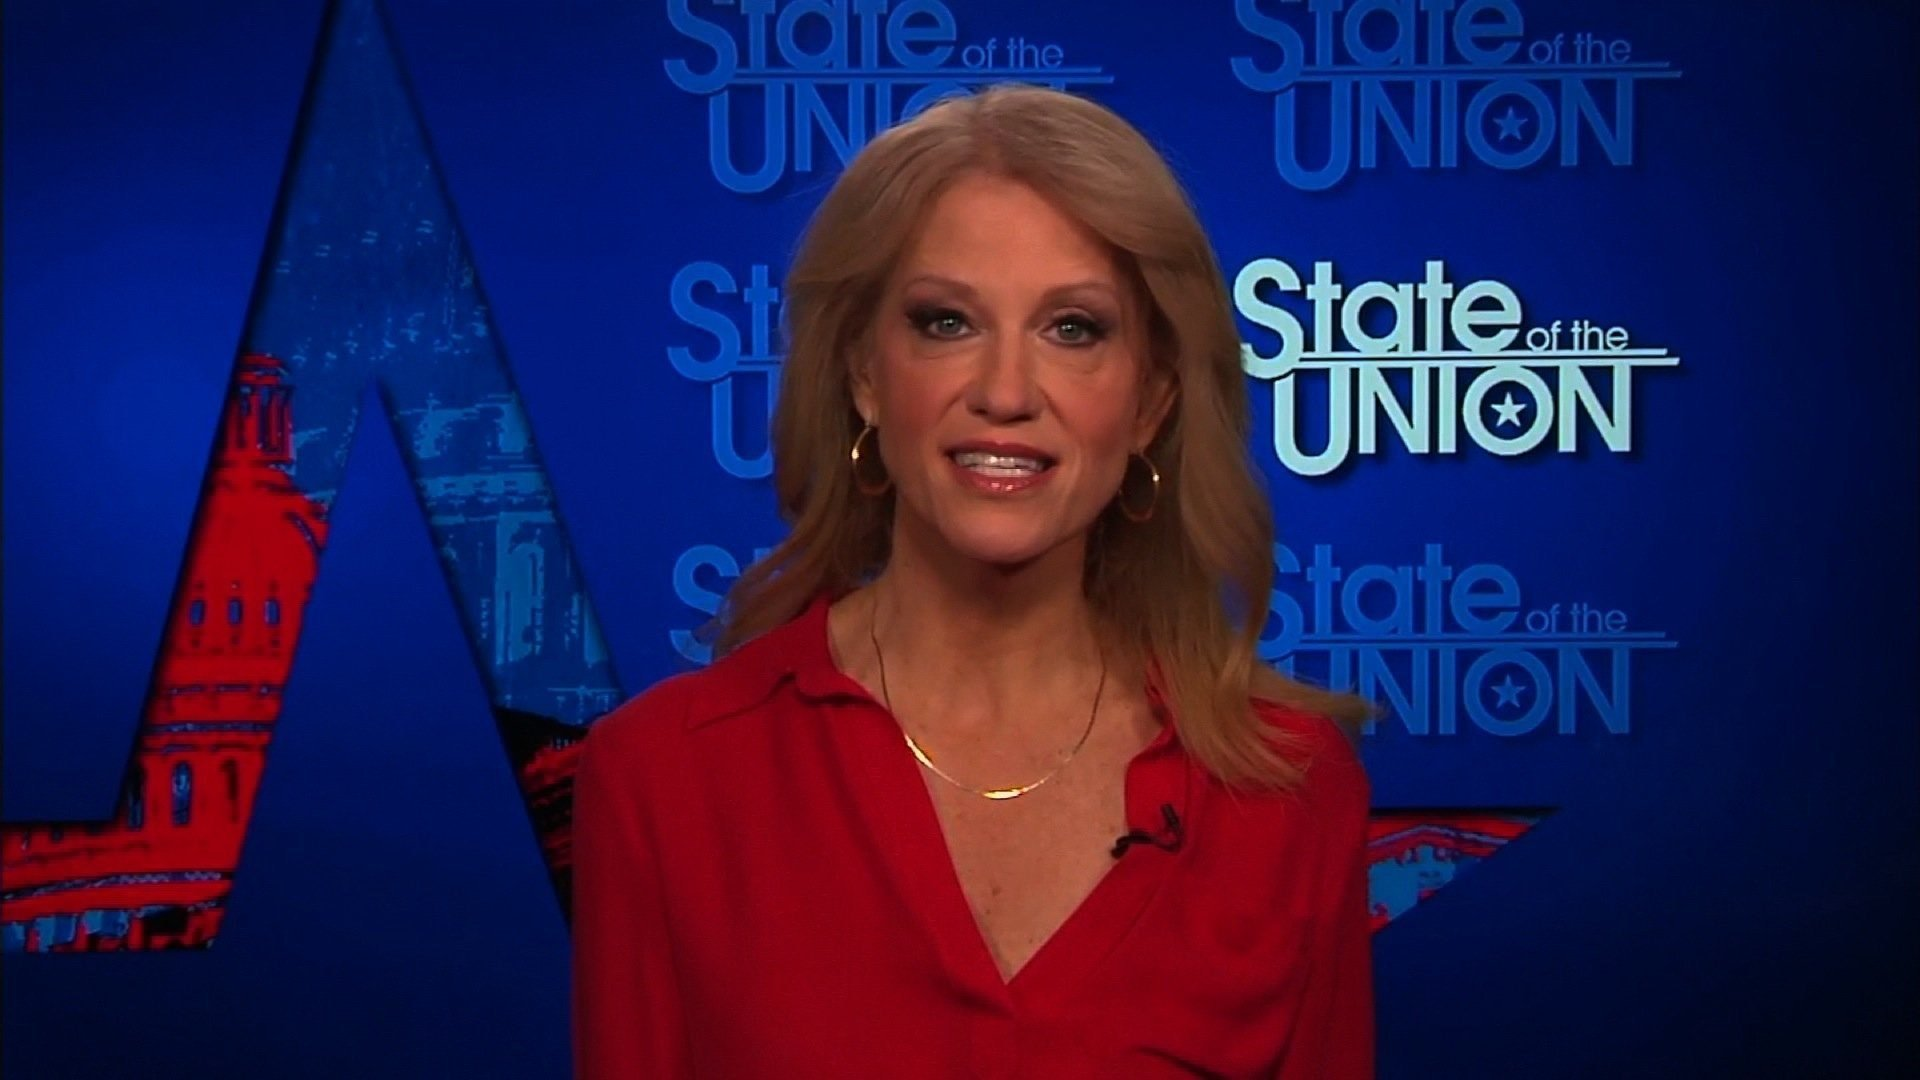 Kellyanne Conway Compared Republican Politics to a 'Bachelor Party'